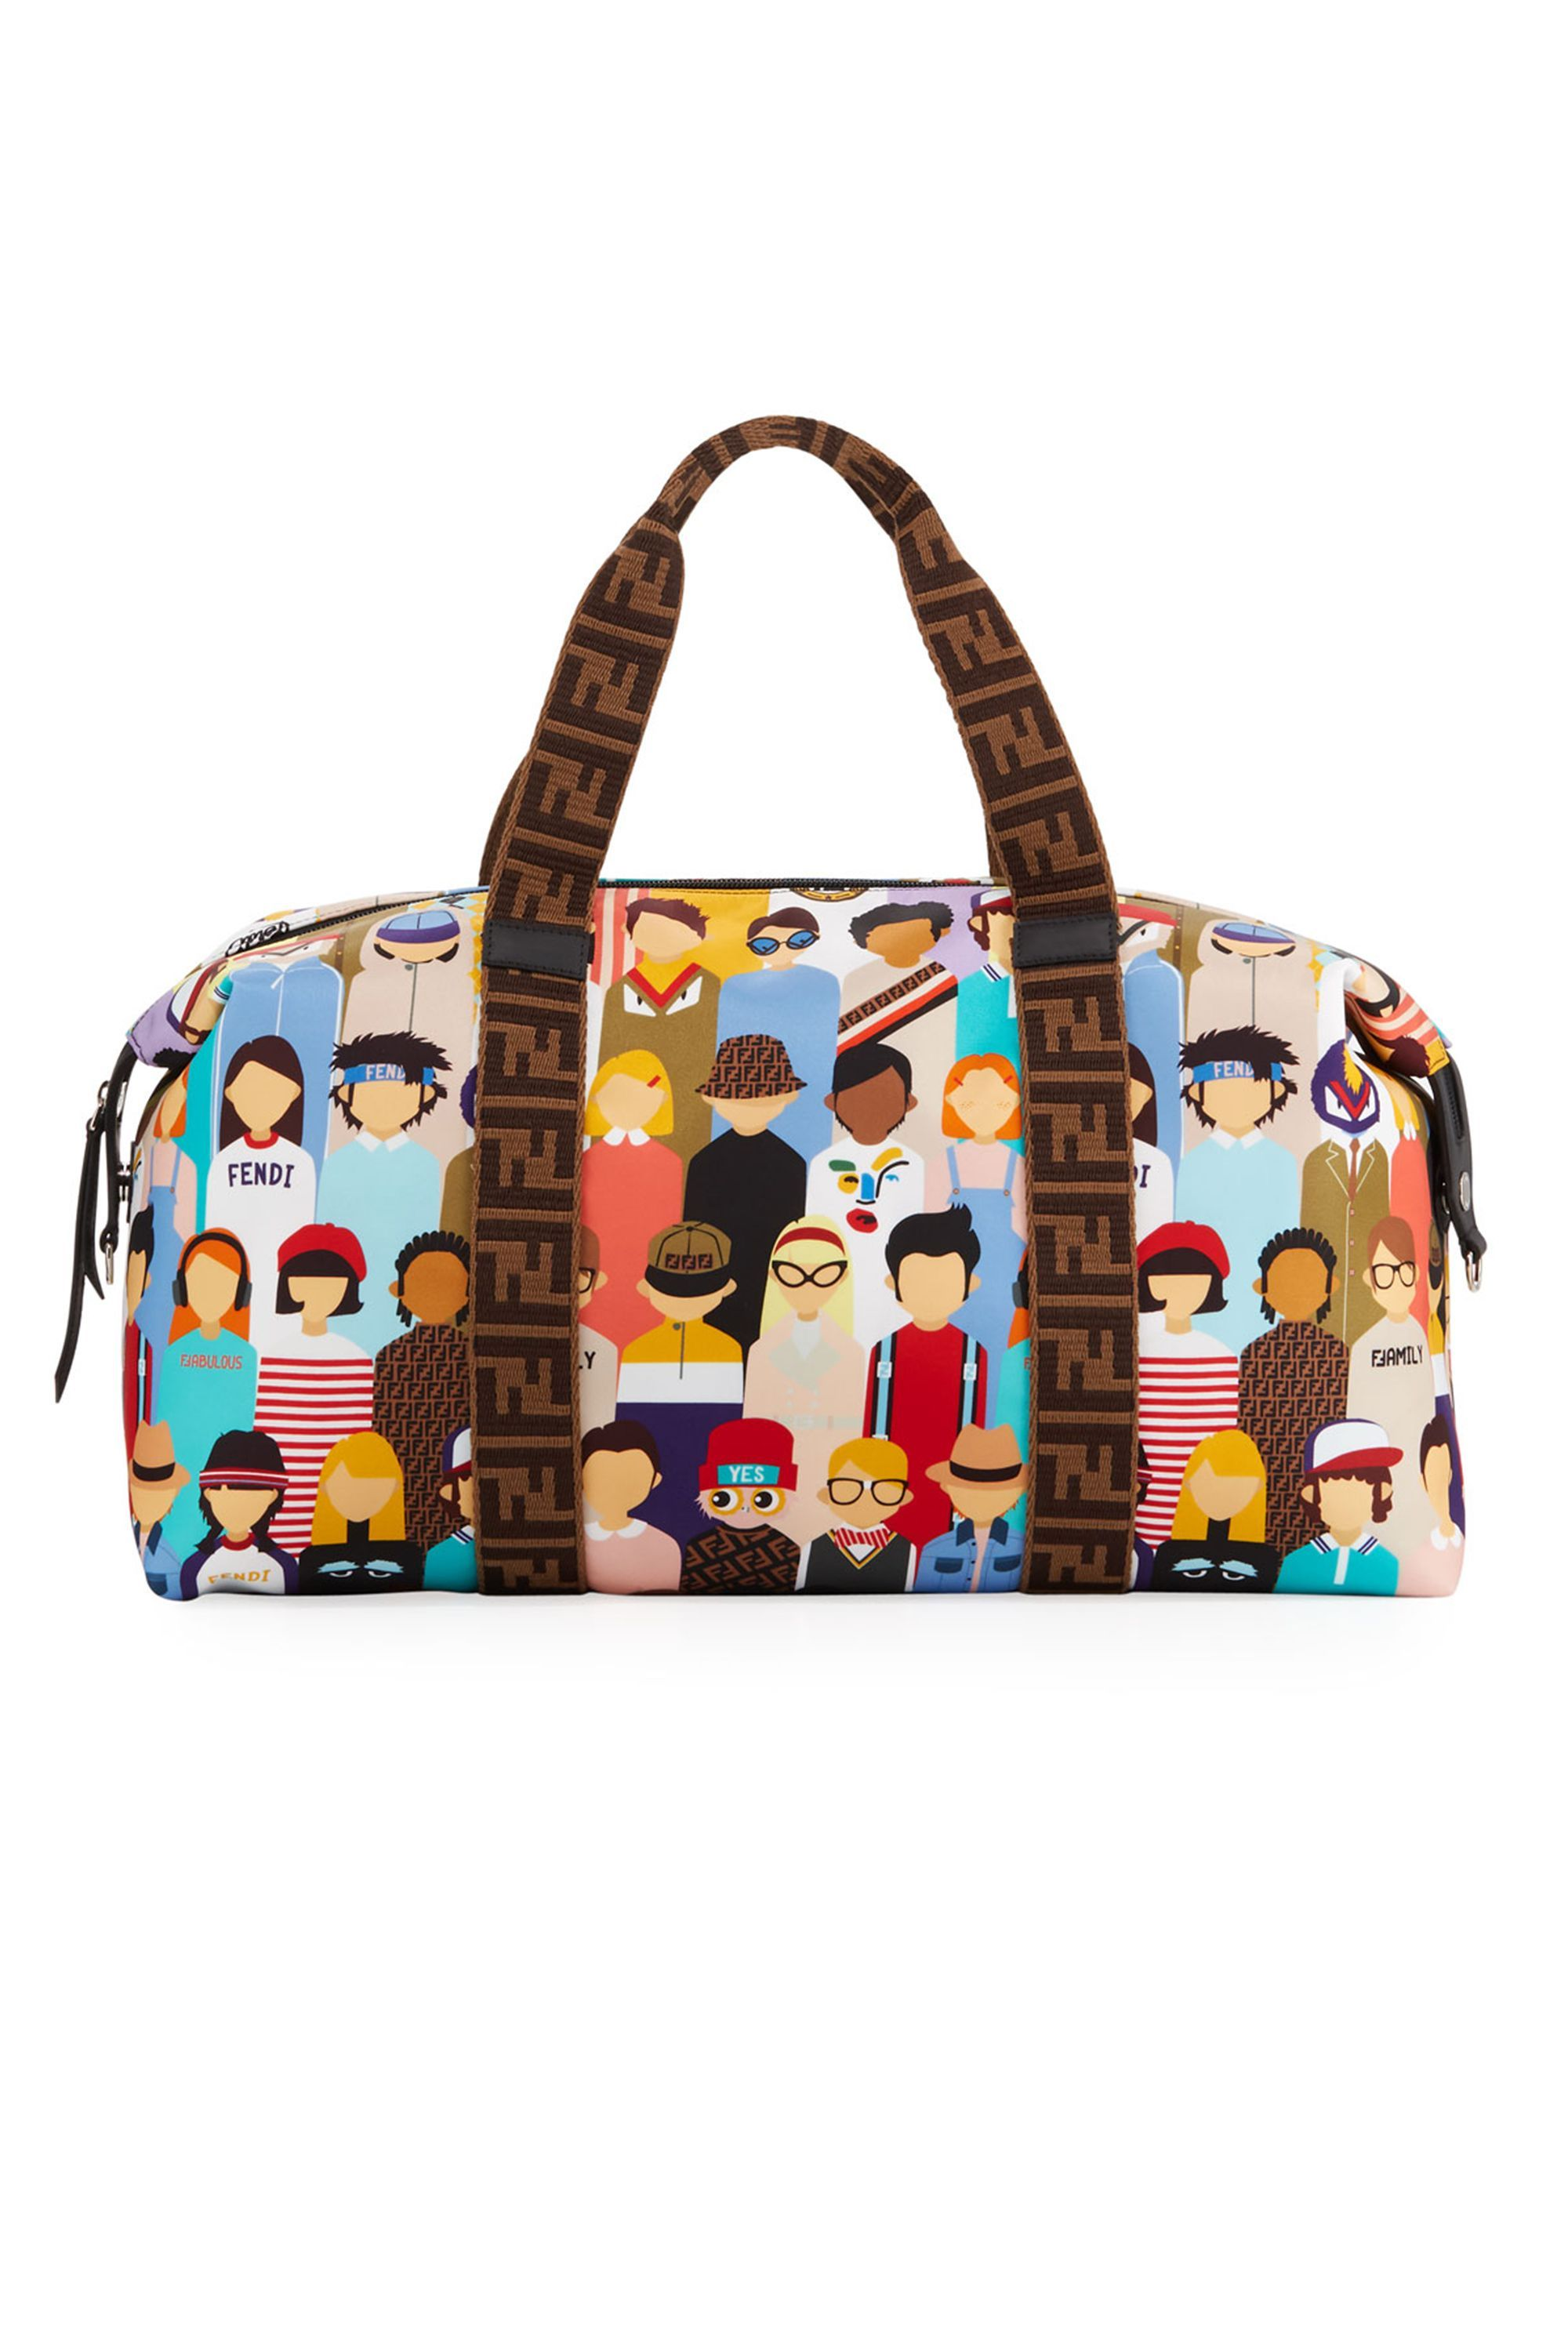 Friends-Print Diaper Bag Fendi bergdorfgoodman.com $1,475.00 SHOP NOW Diaper bags can get a little boring.